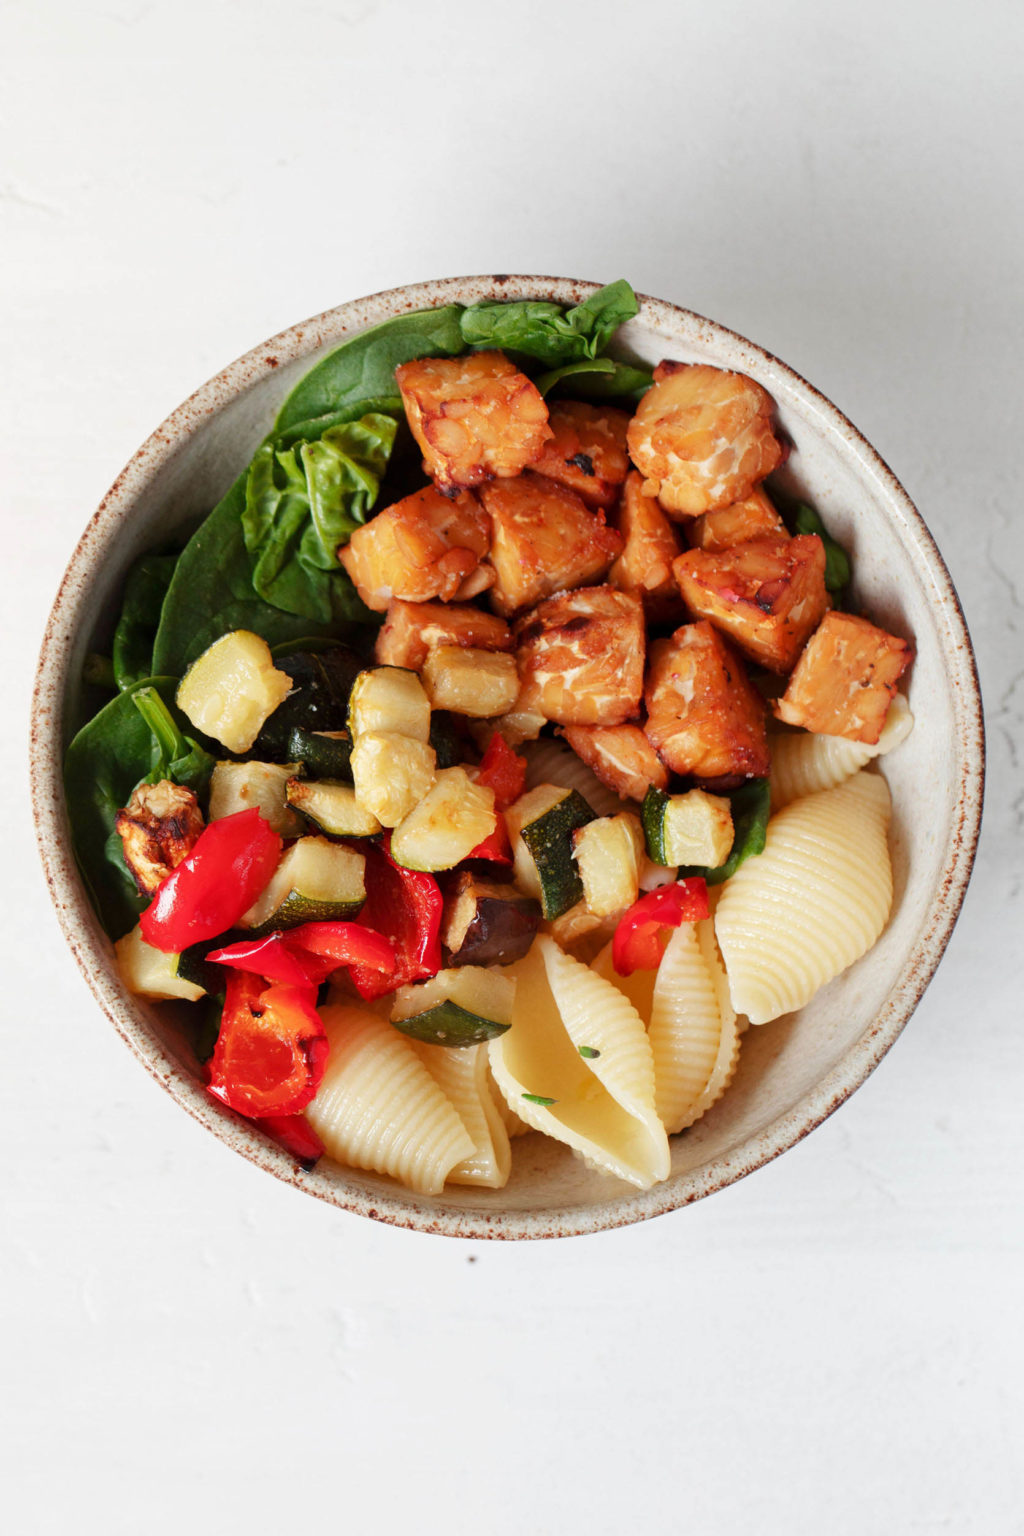 An overhead image of a serving dish that holds roasted tempeh cubes, spinach, and roasted vegetables. The colorful mixture is set against a white backdrop.